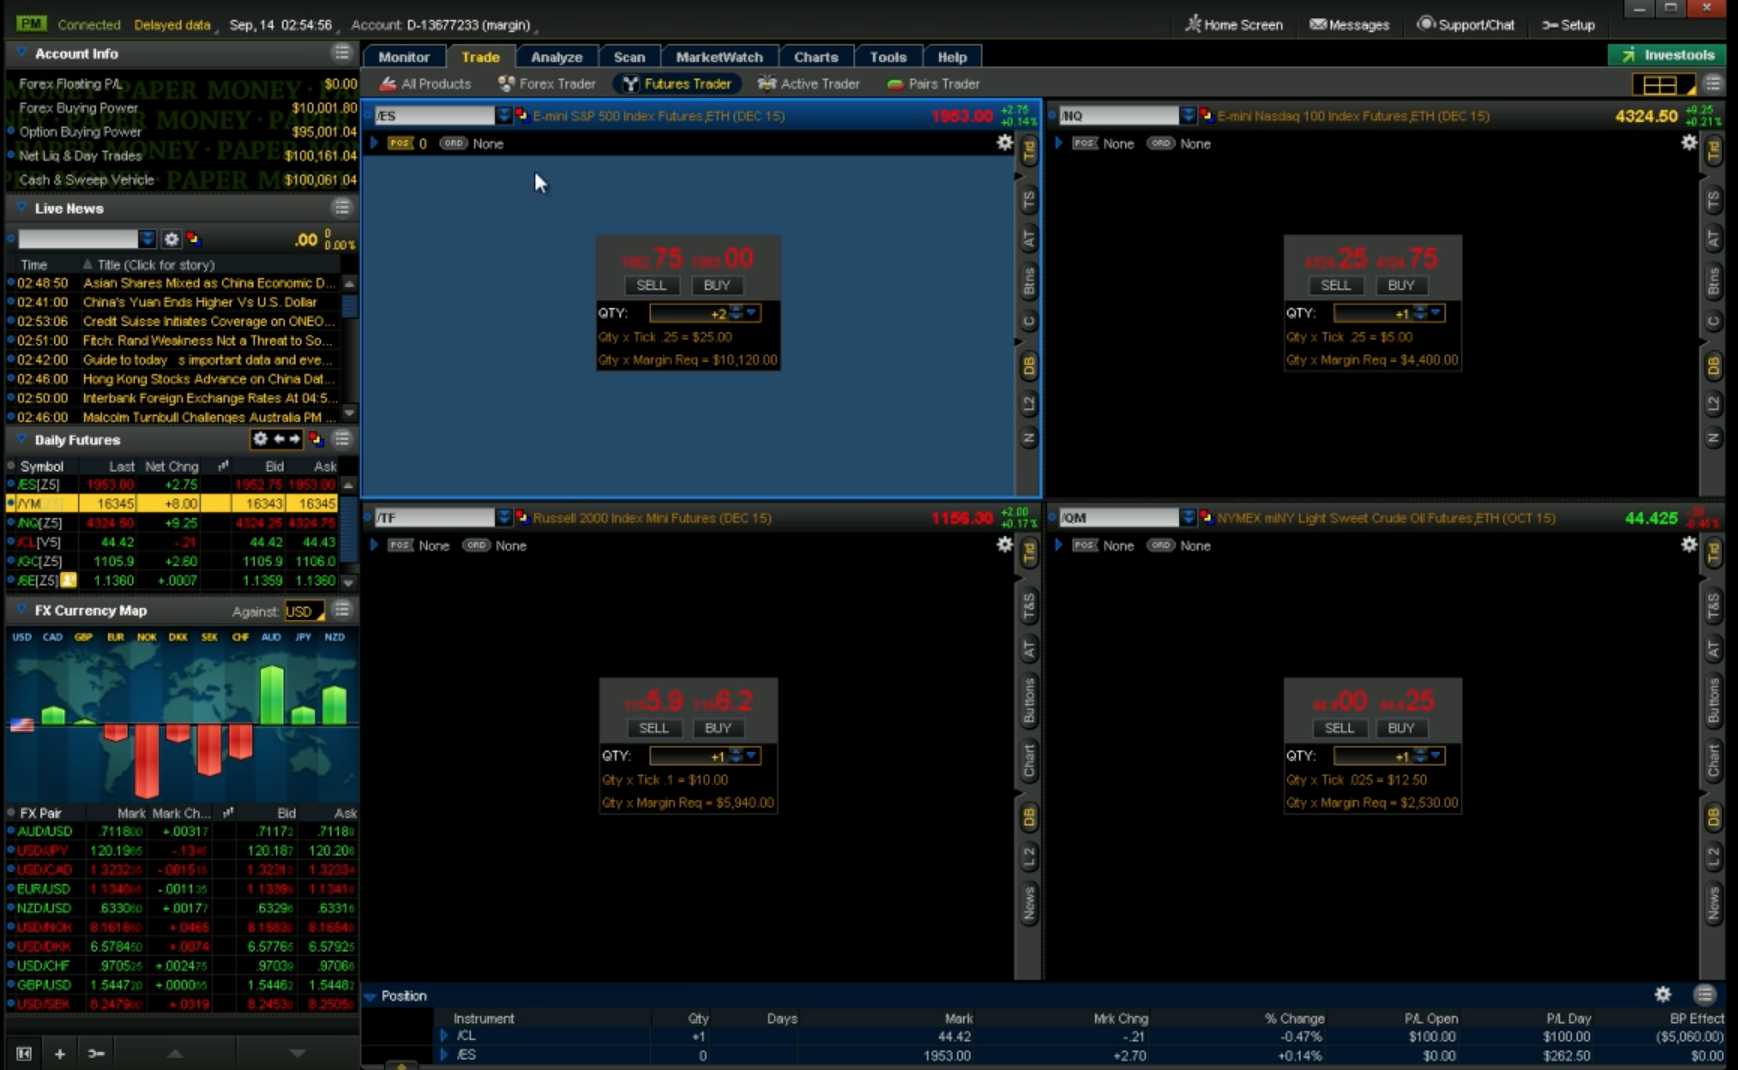 Futures Trading on ThinkorSwim Platform